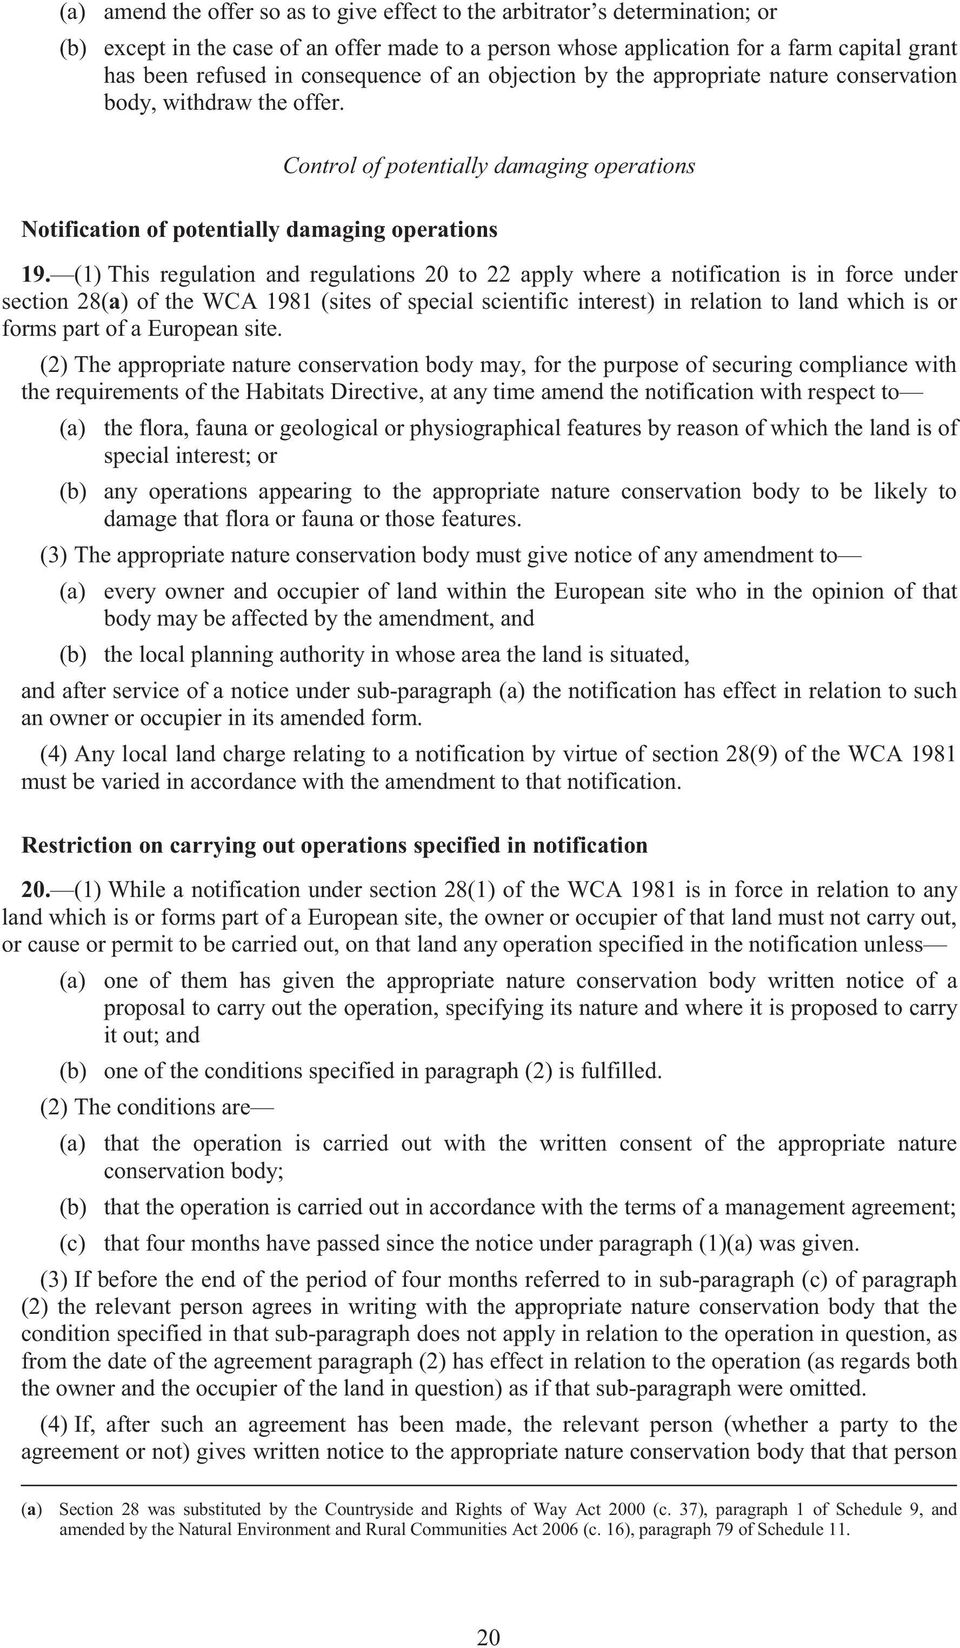 (1) This regulation and regulations 20 to 22 apply where a notification is in force under section 28(a) of the WCA 1981 (sites of special scientific interest) in relation to land which is or forms